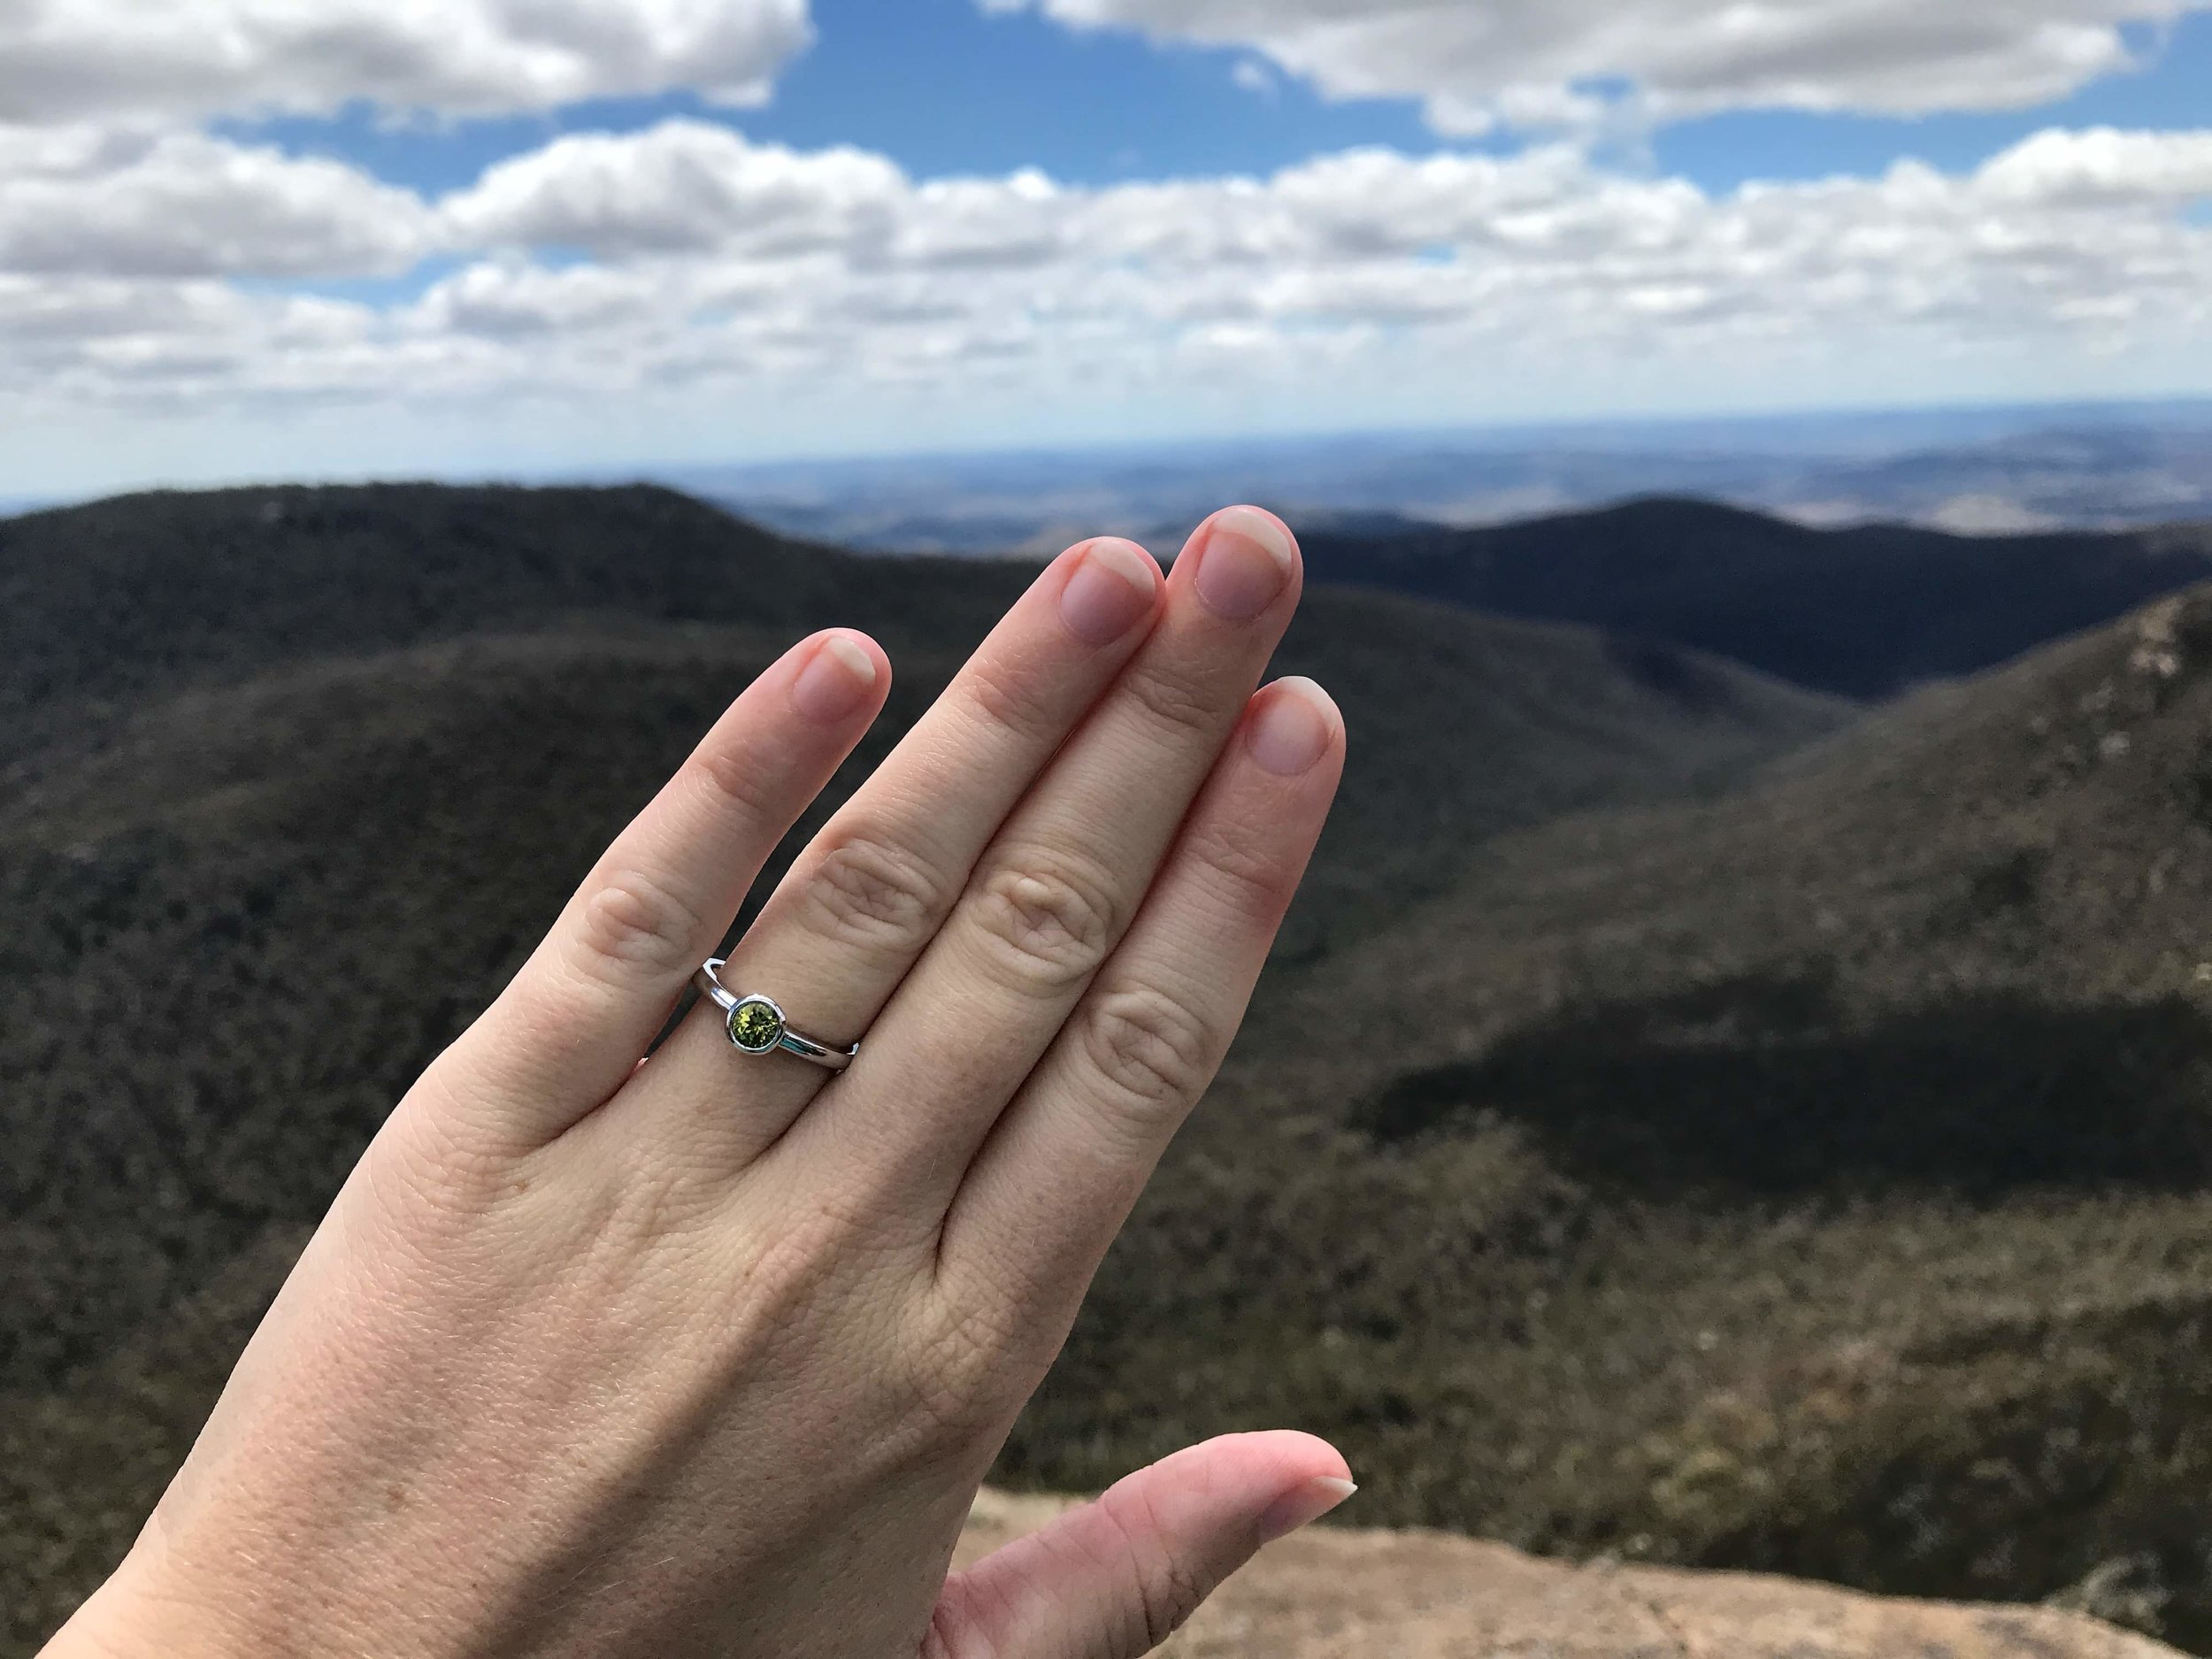 Beth wearing her unique engagement ring at Brendan's beautiful proposal location, Booroombah Rocks.